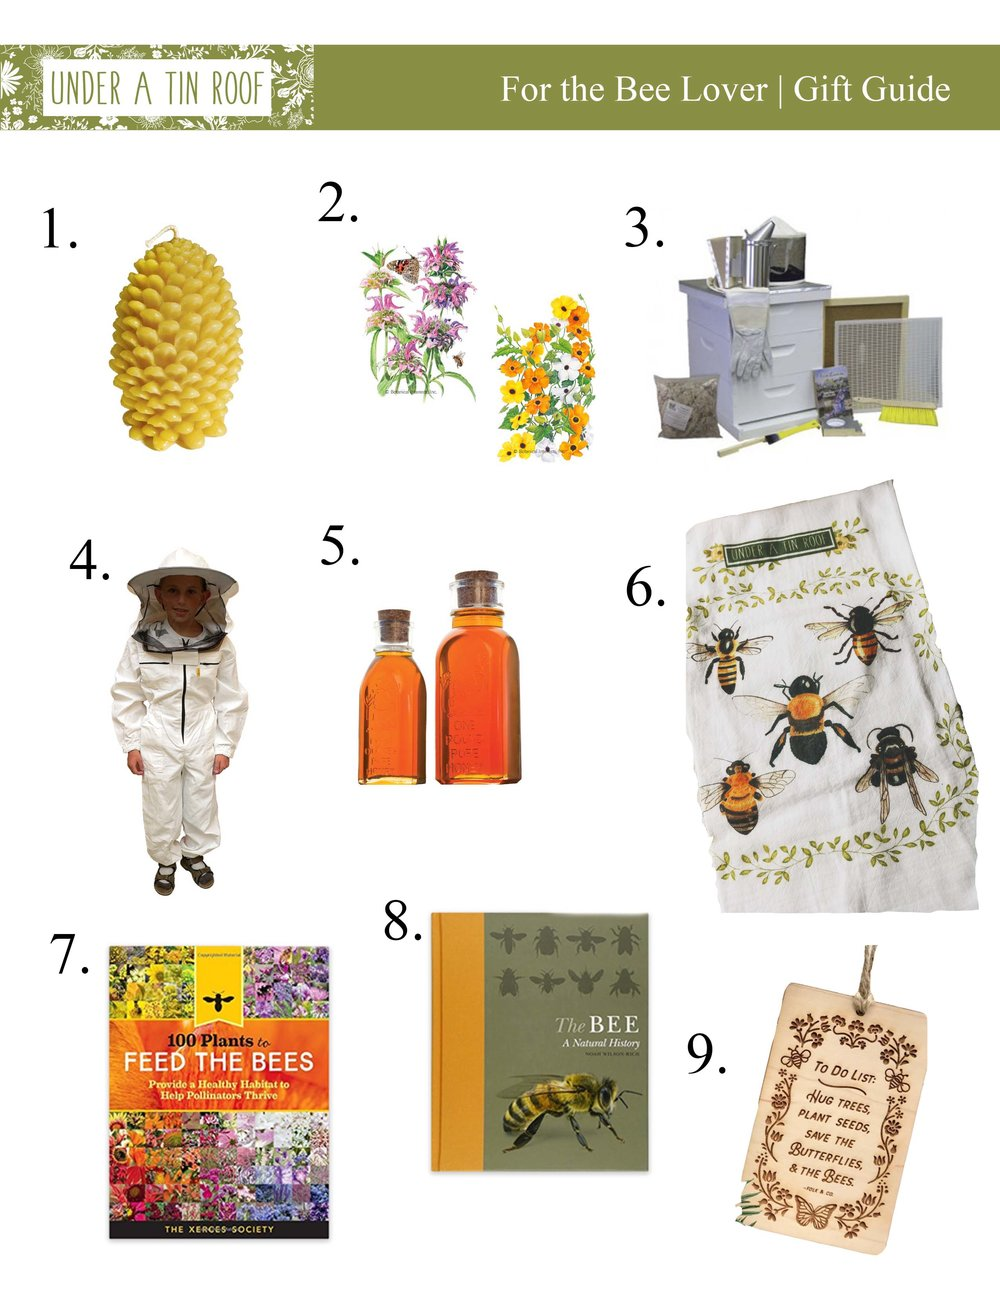 Gifts for the Bee Lover - Under A Tin Roof Blog